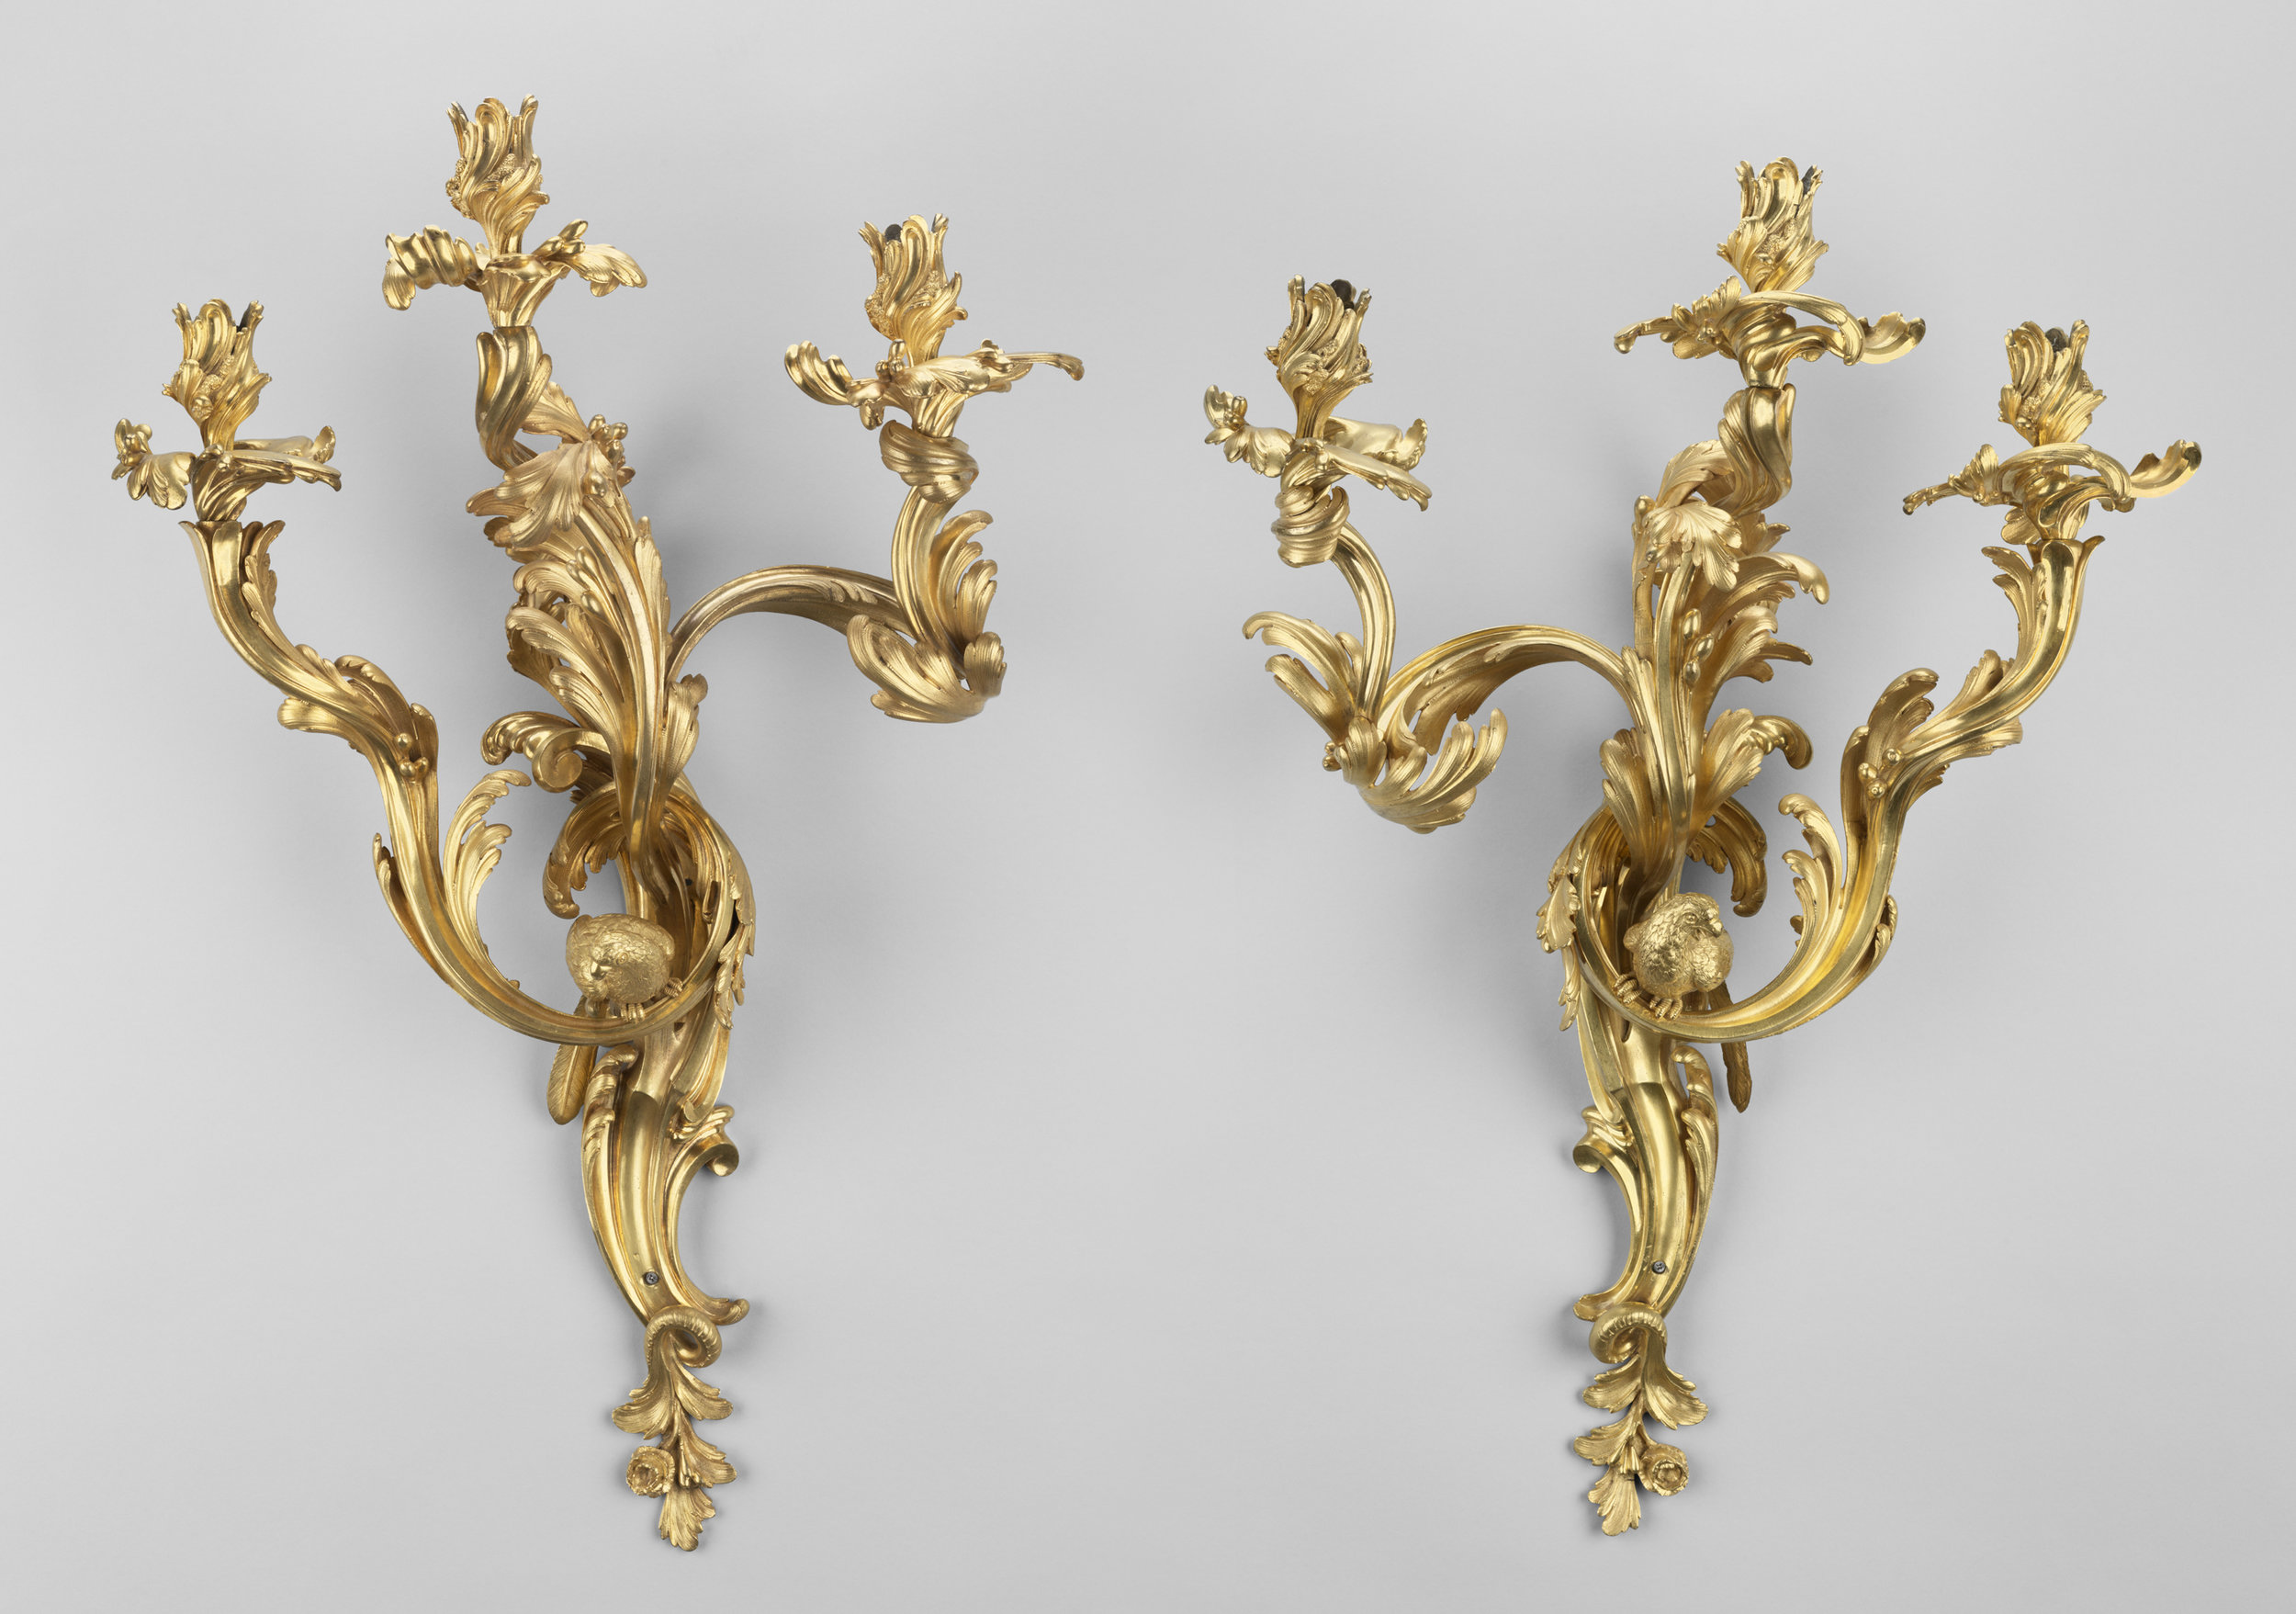 Oct_Gilt bronze wall lights.jpg